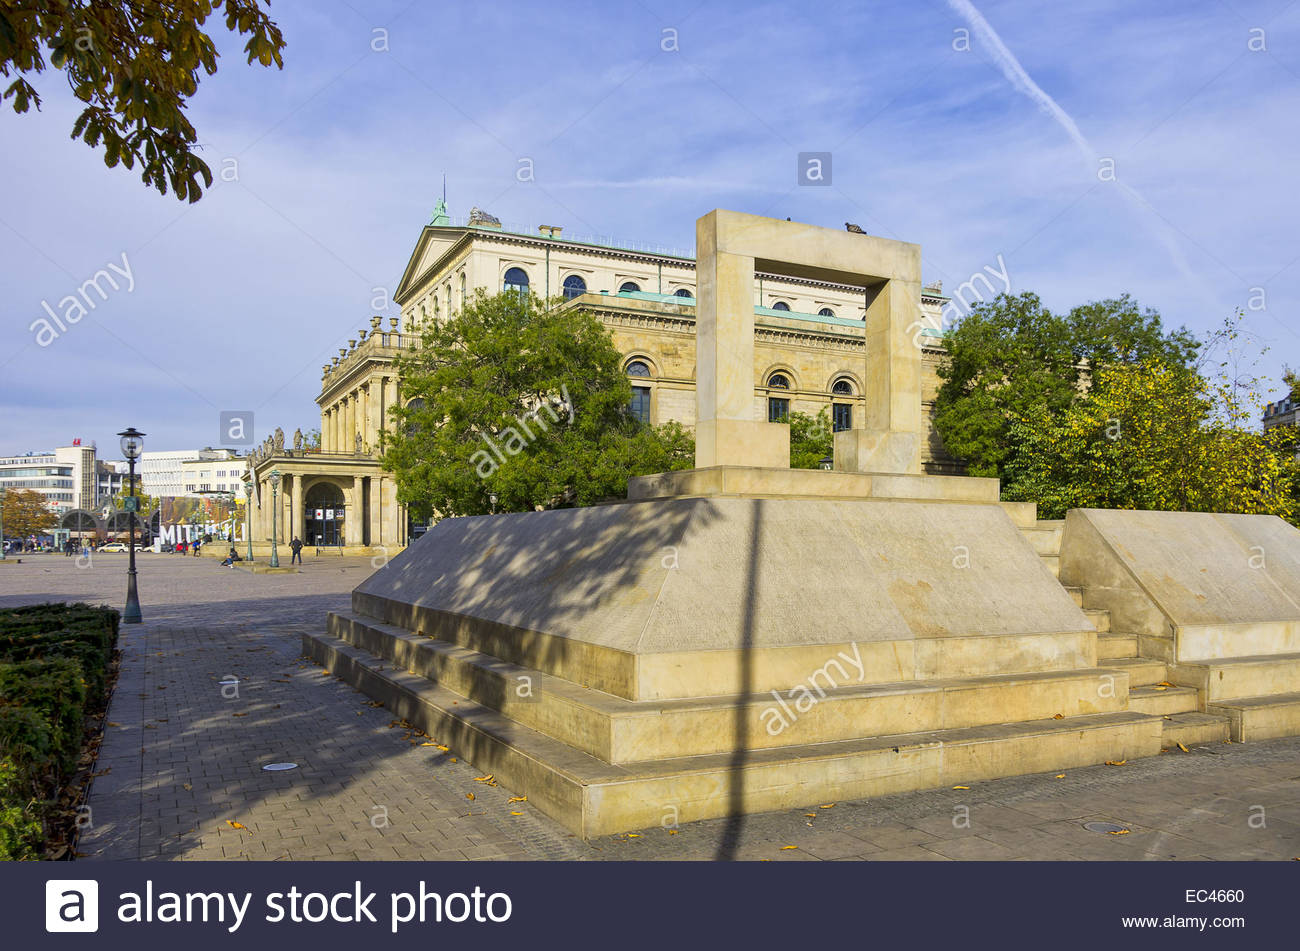 Memorial to the murdered jews of Hanover on the Opernplatz Square, Hannover, Germany Stock Photo